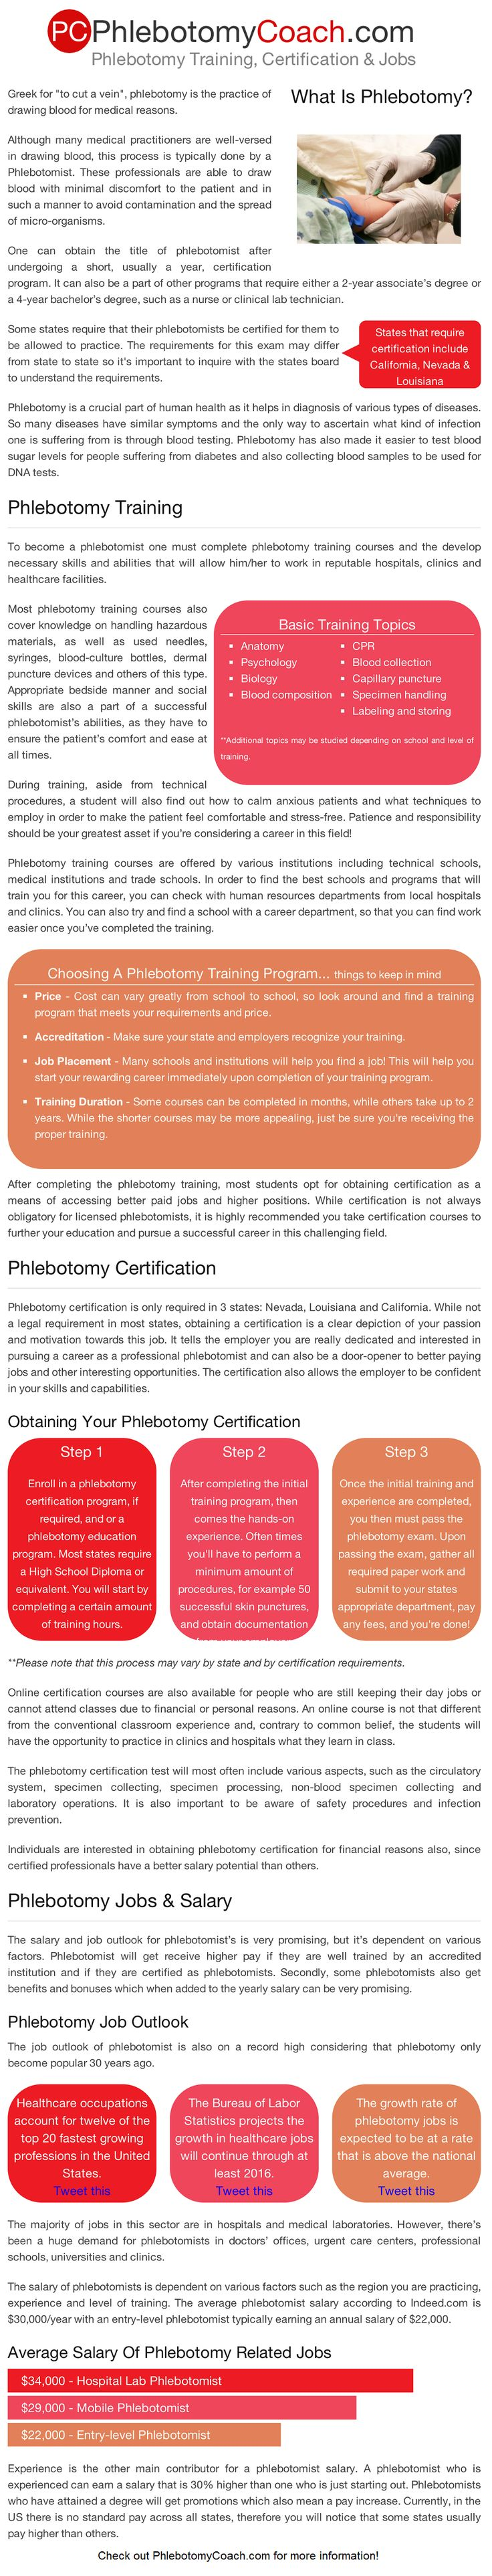 197 best phlebotomy images on pinterest gym nurses and nursing the webs leading resource for phlebotomy training information certification jobs and more start your career as a phlebotomist today fandeluxe Image collections